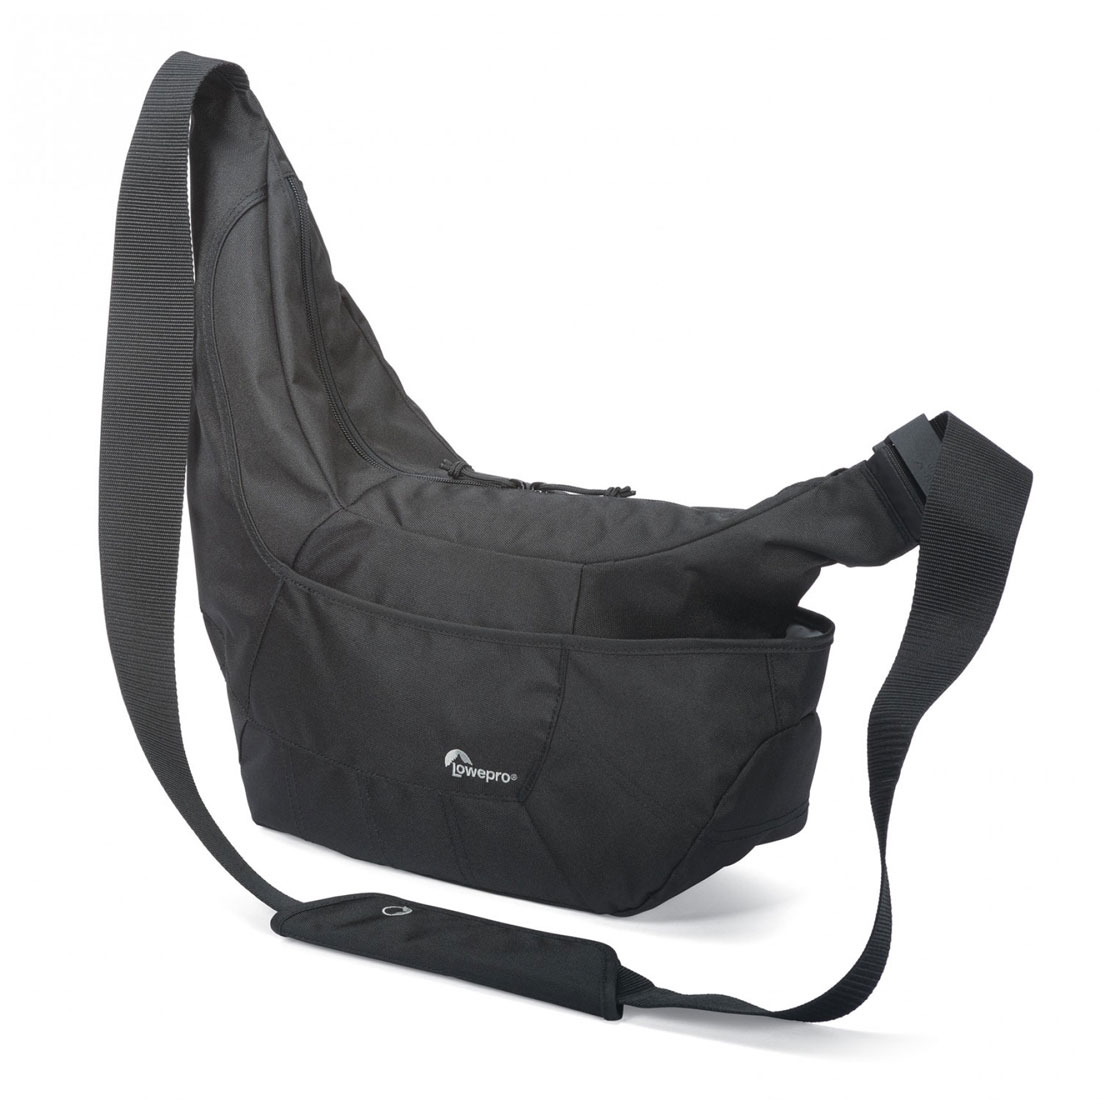 Le sac photo Lowepro Passport Sling III, en noir.